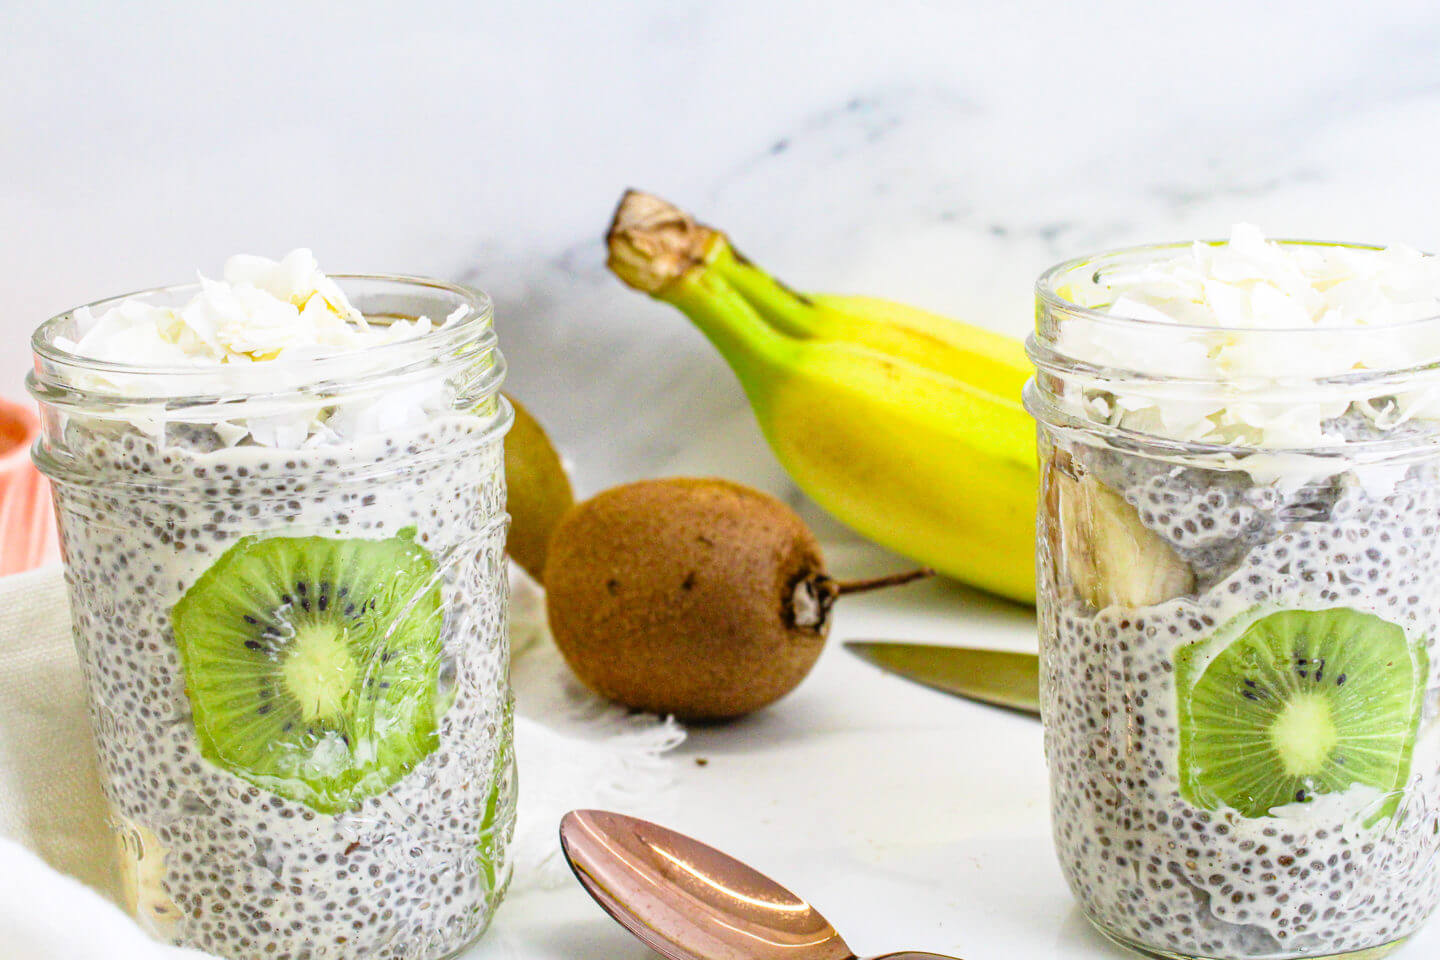 Sustainable and Plant-based Lifestyle influencer shares her delicious Spring Chia pudding recipe recipe!